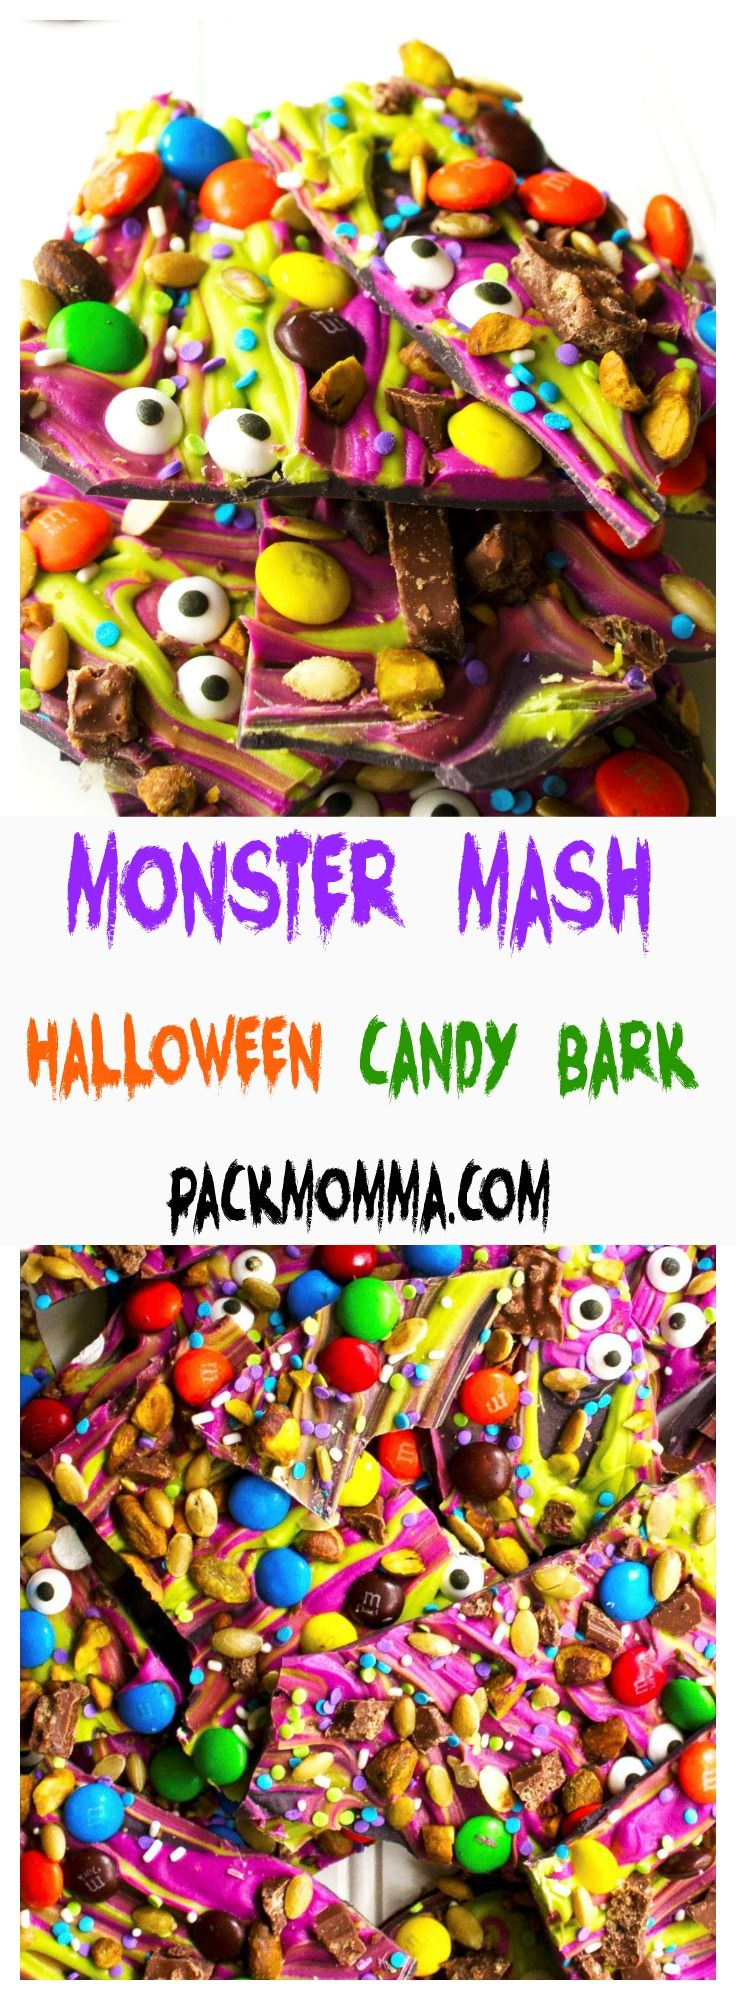 Monster Mash Halloween Candy Bark | This festive and fun no-bake Monster Mash Halloween Candy Bark is the perfect sweet treat to scare up some new friends this Halloween | Pack Momma